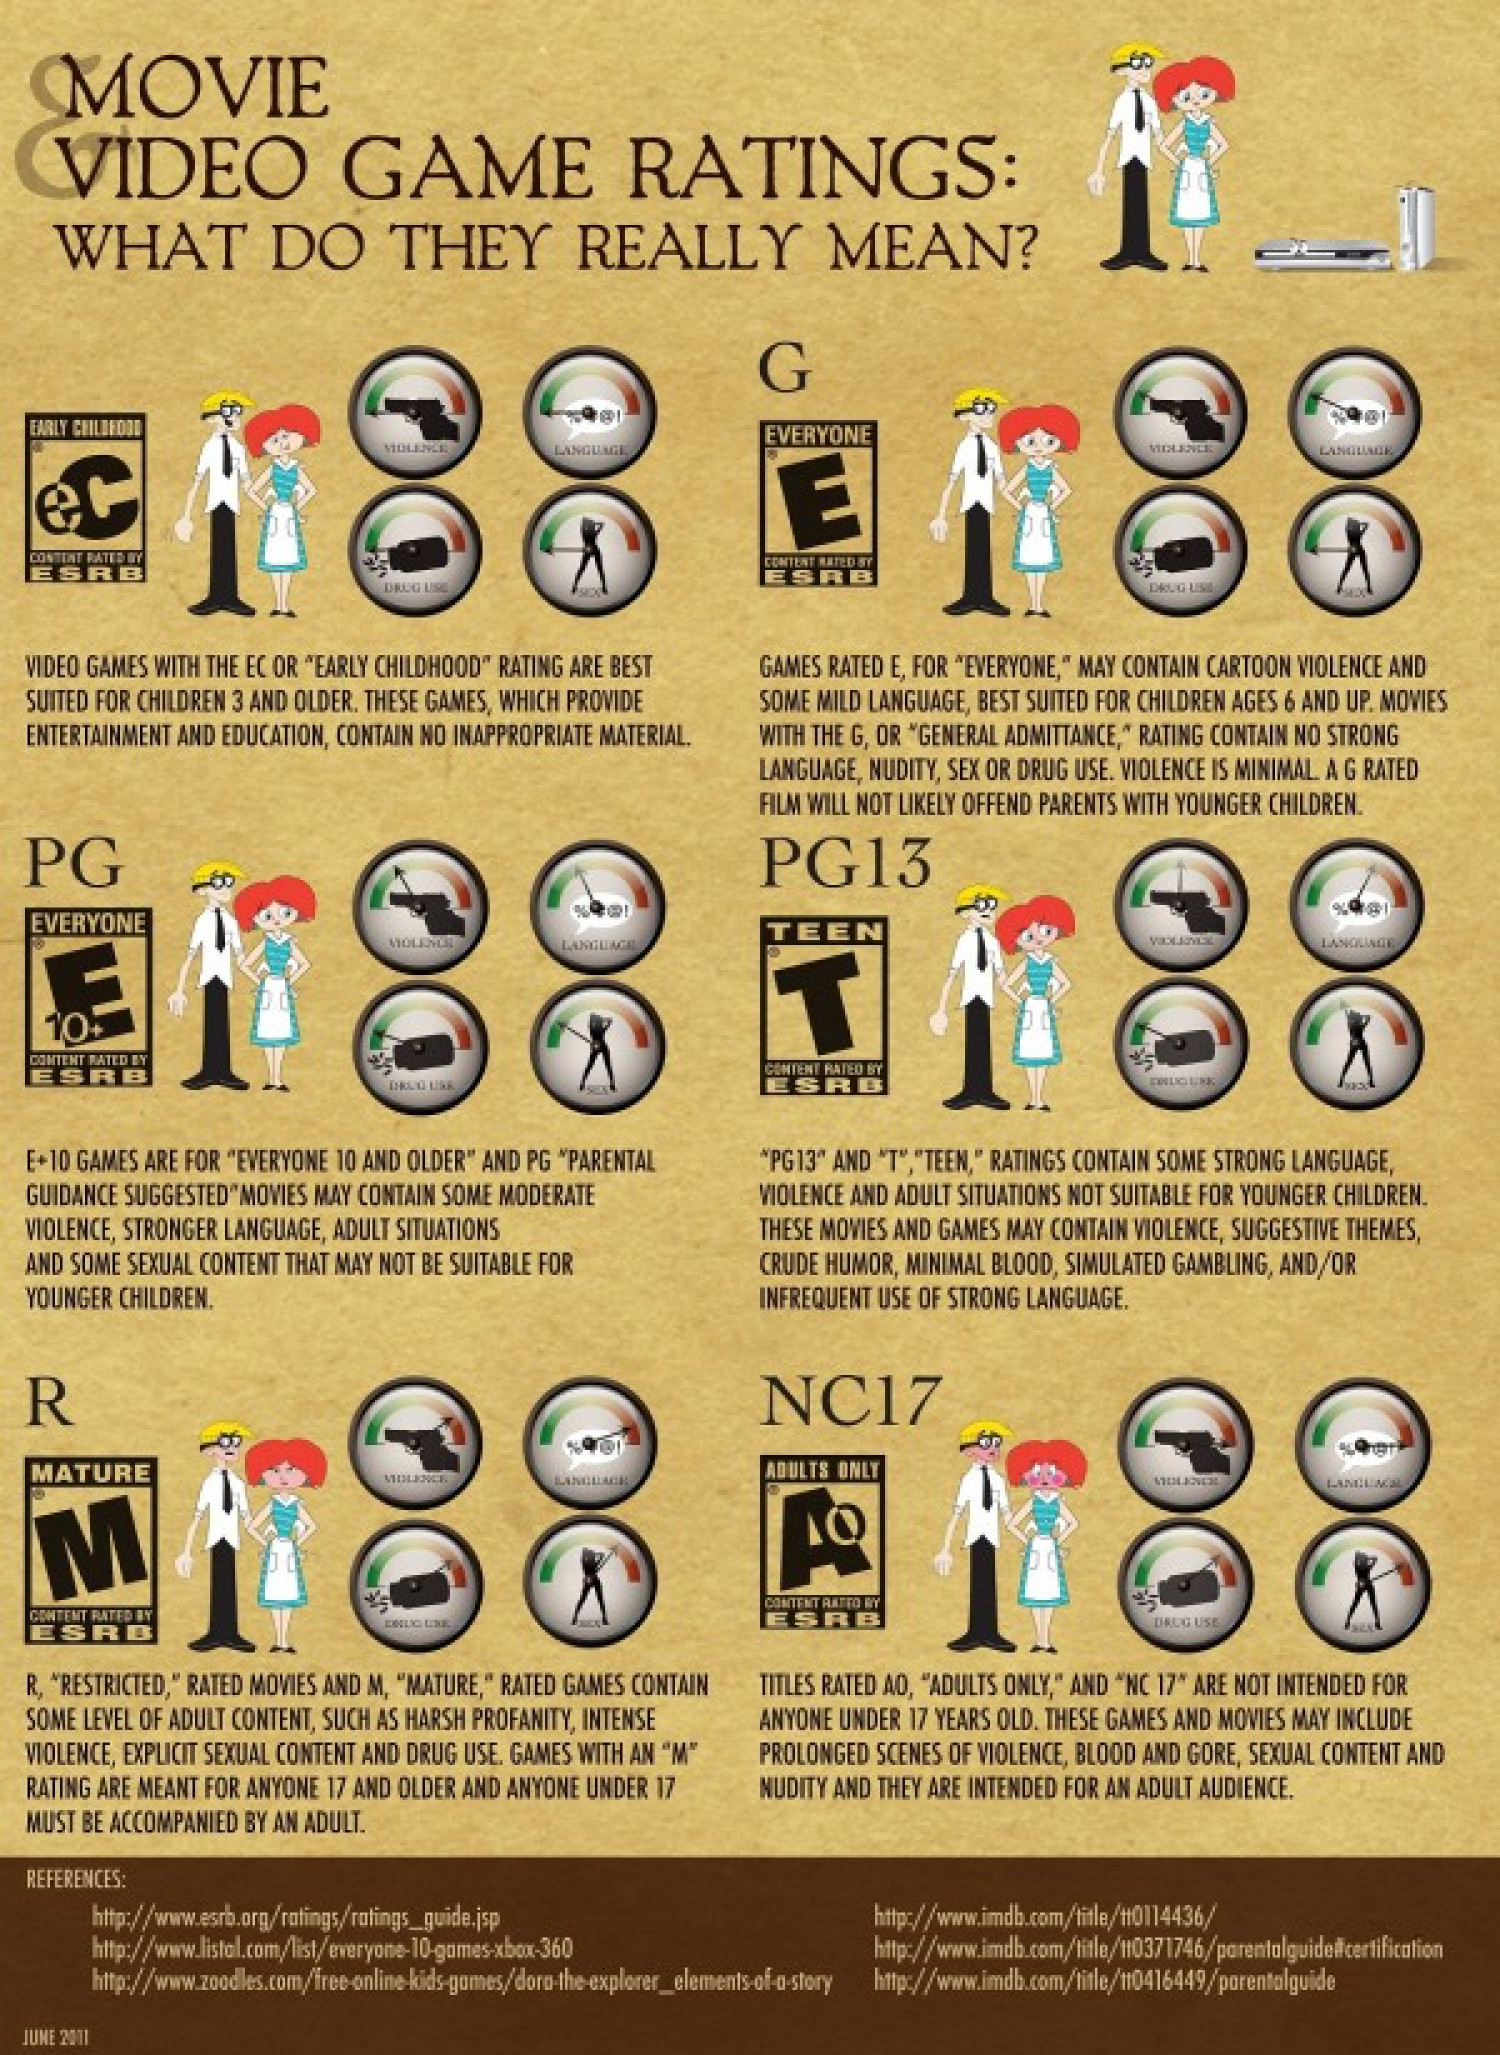 Movie & Video Game Ratings: What To They Mean?  Infographic